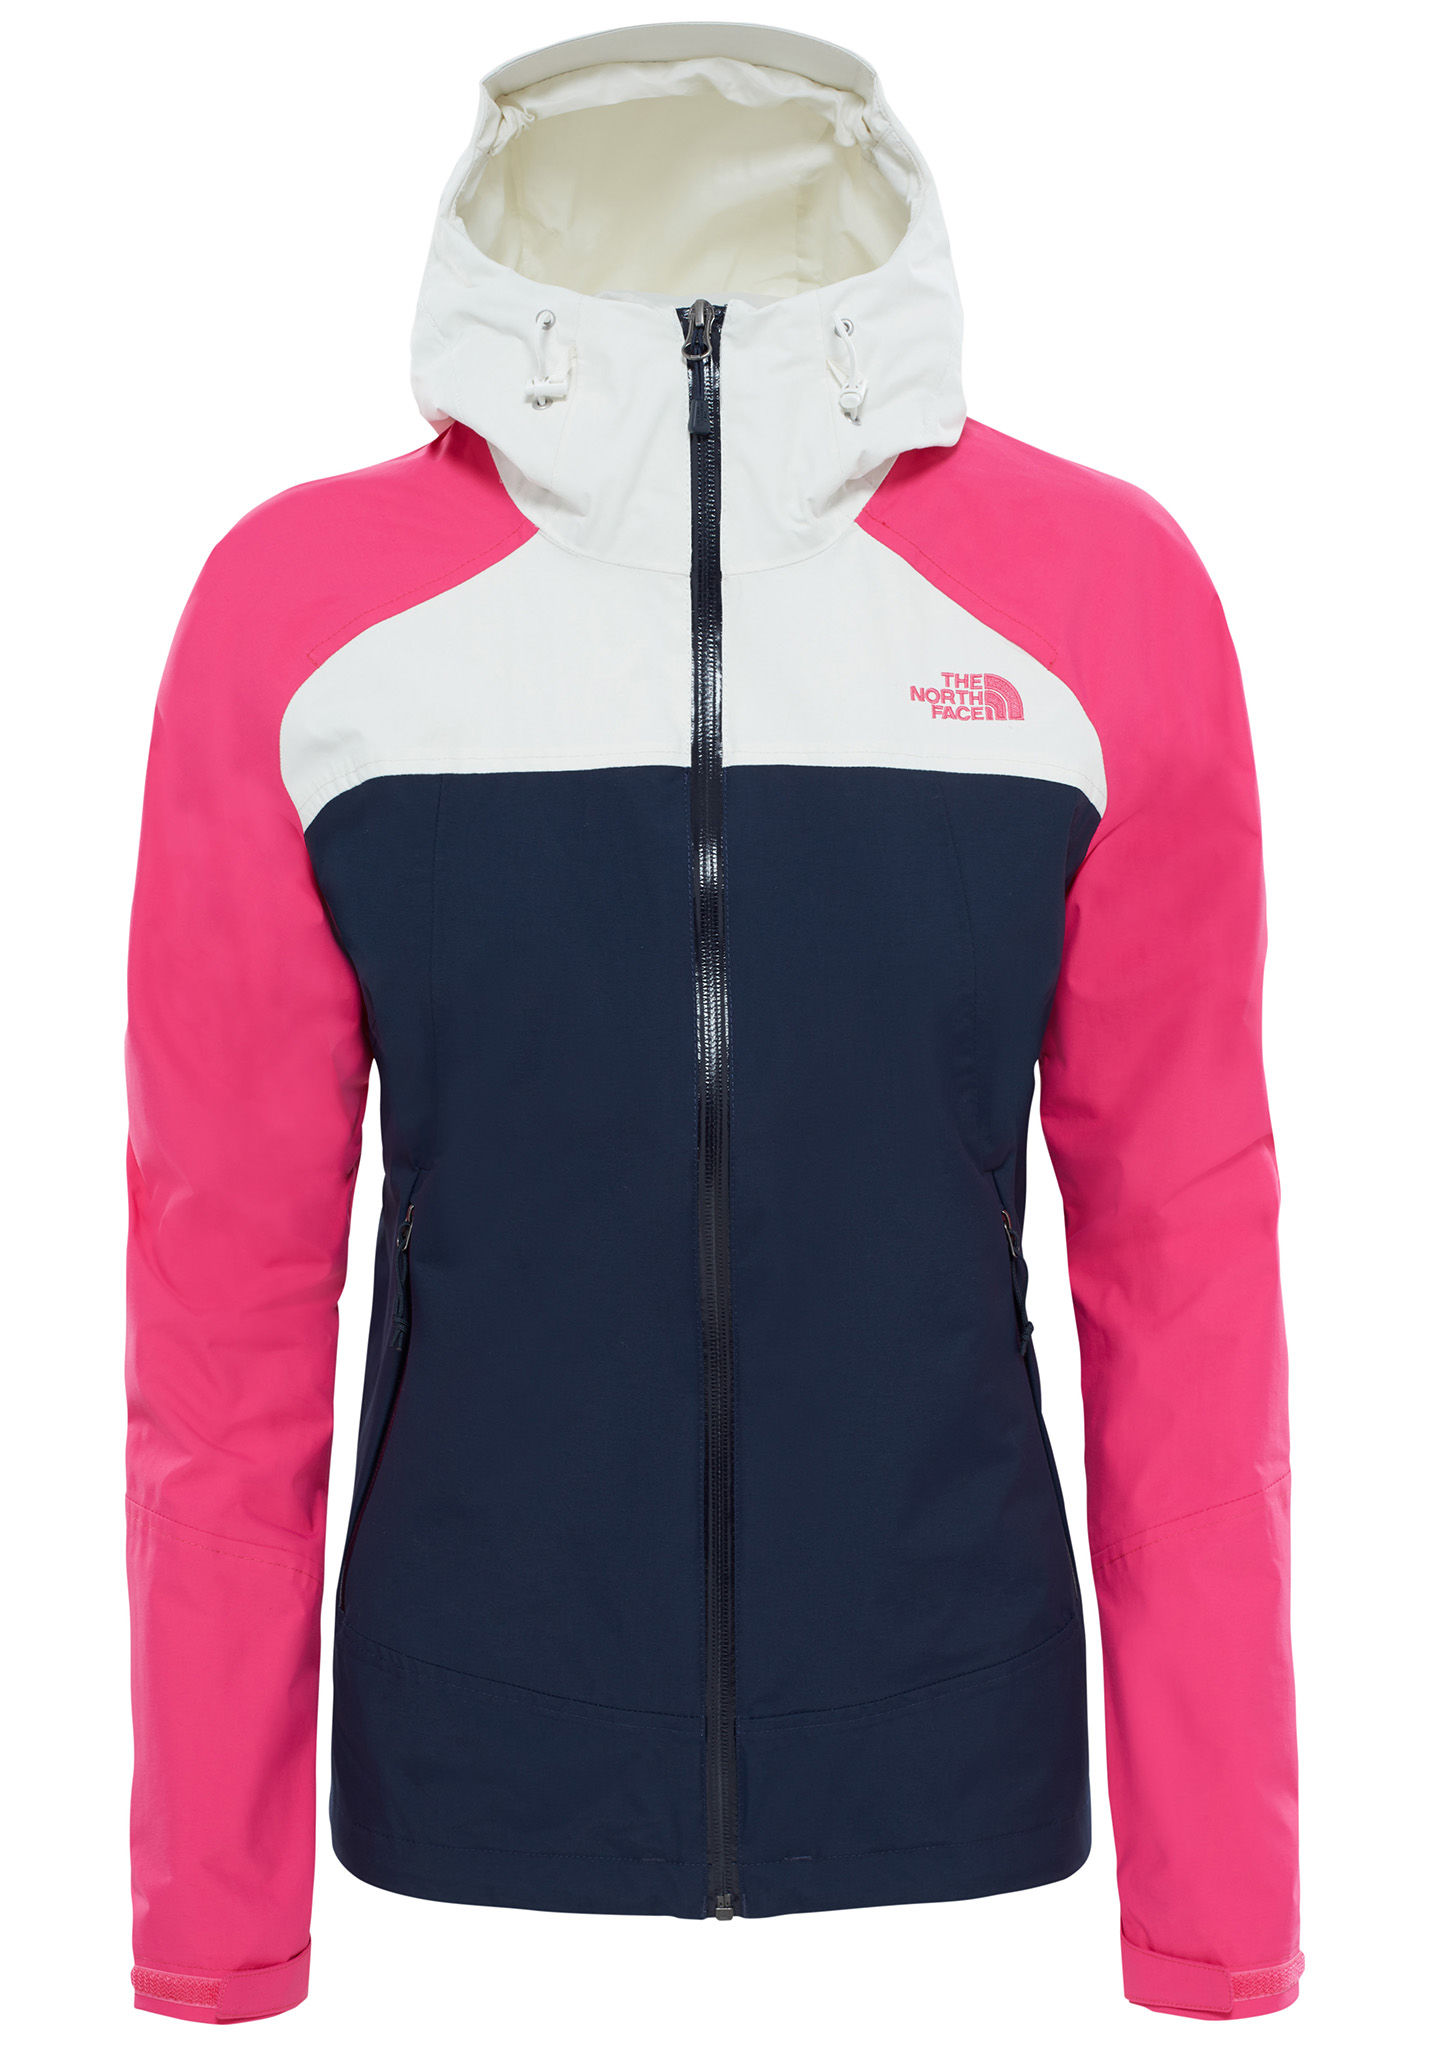 027d61548874 THE NORTH FACE Stratos - Functional Jacket for Women - Multicolor - Planet  Sports